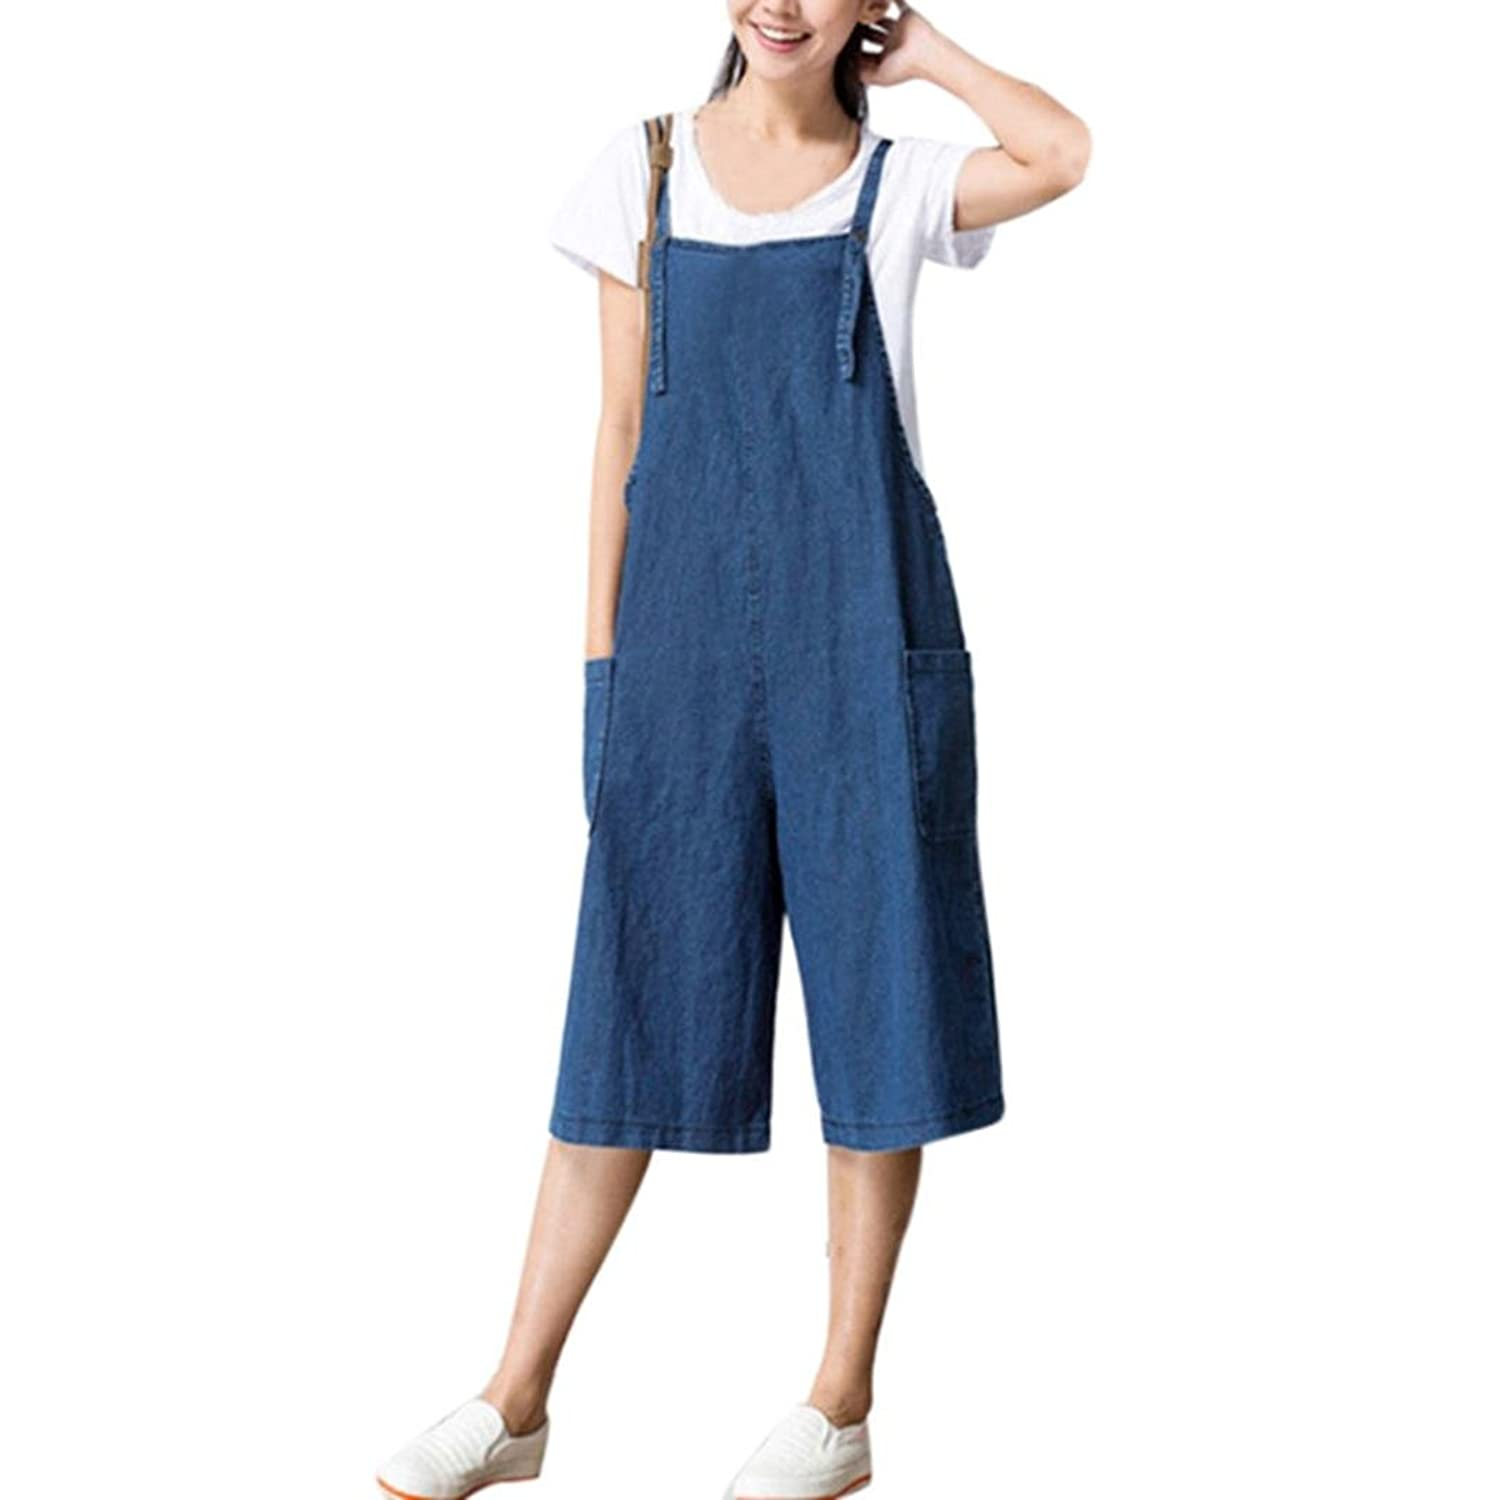 f30991b4898 Top 10 wholesale Denim Dungarees Online - Chinabrands.com